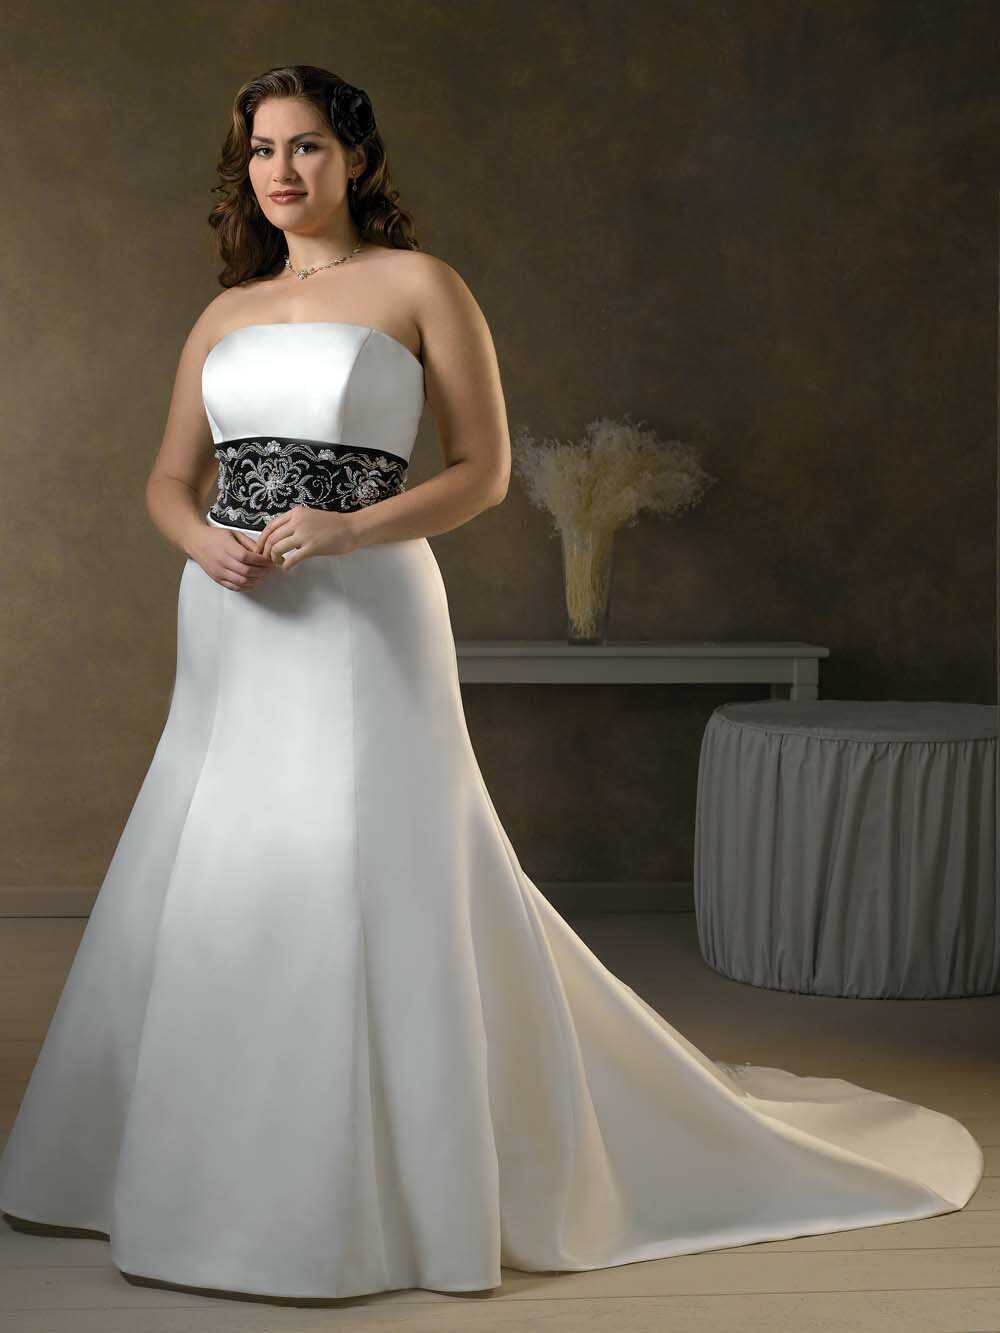 petite plus size wedding dress dress ideas